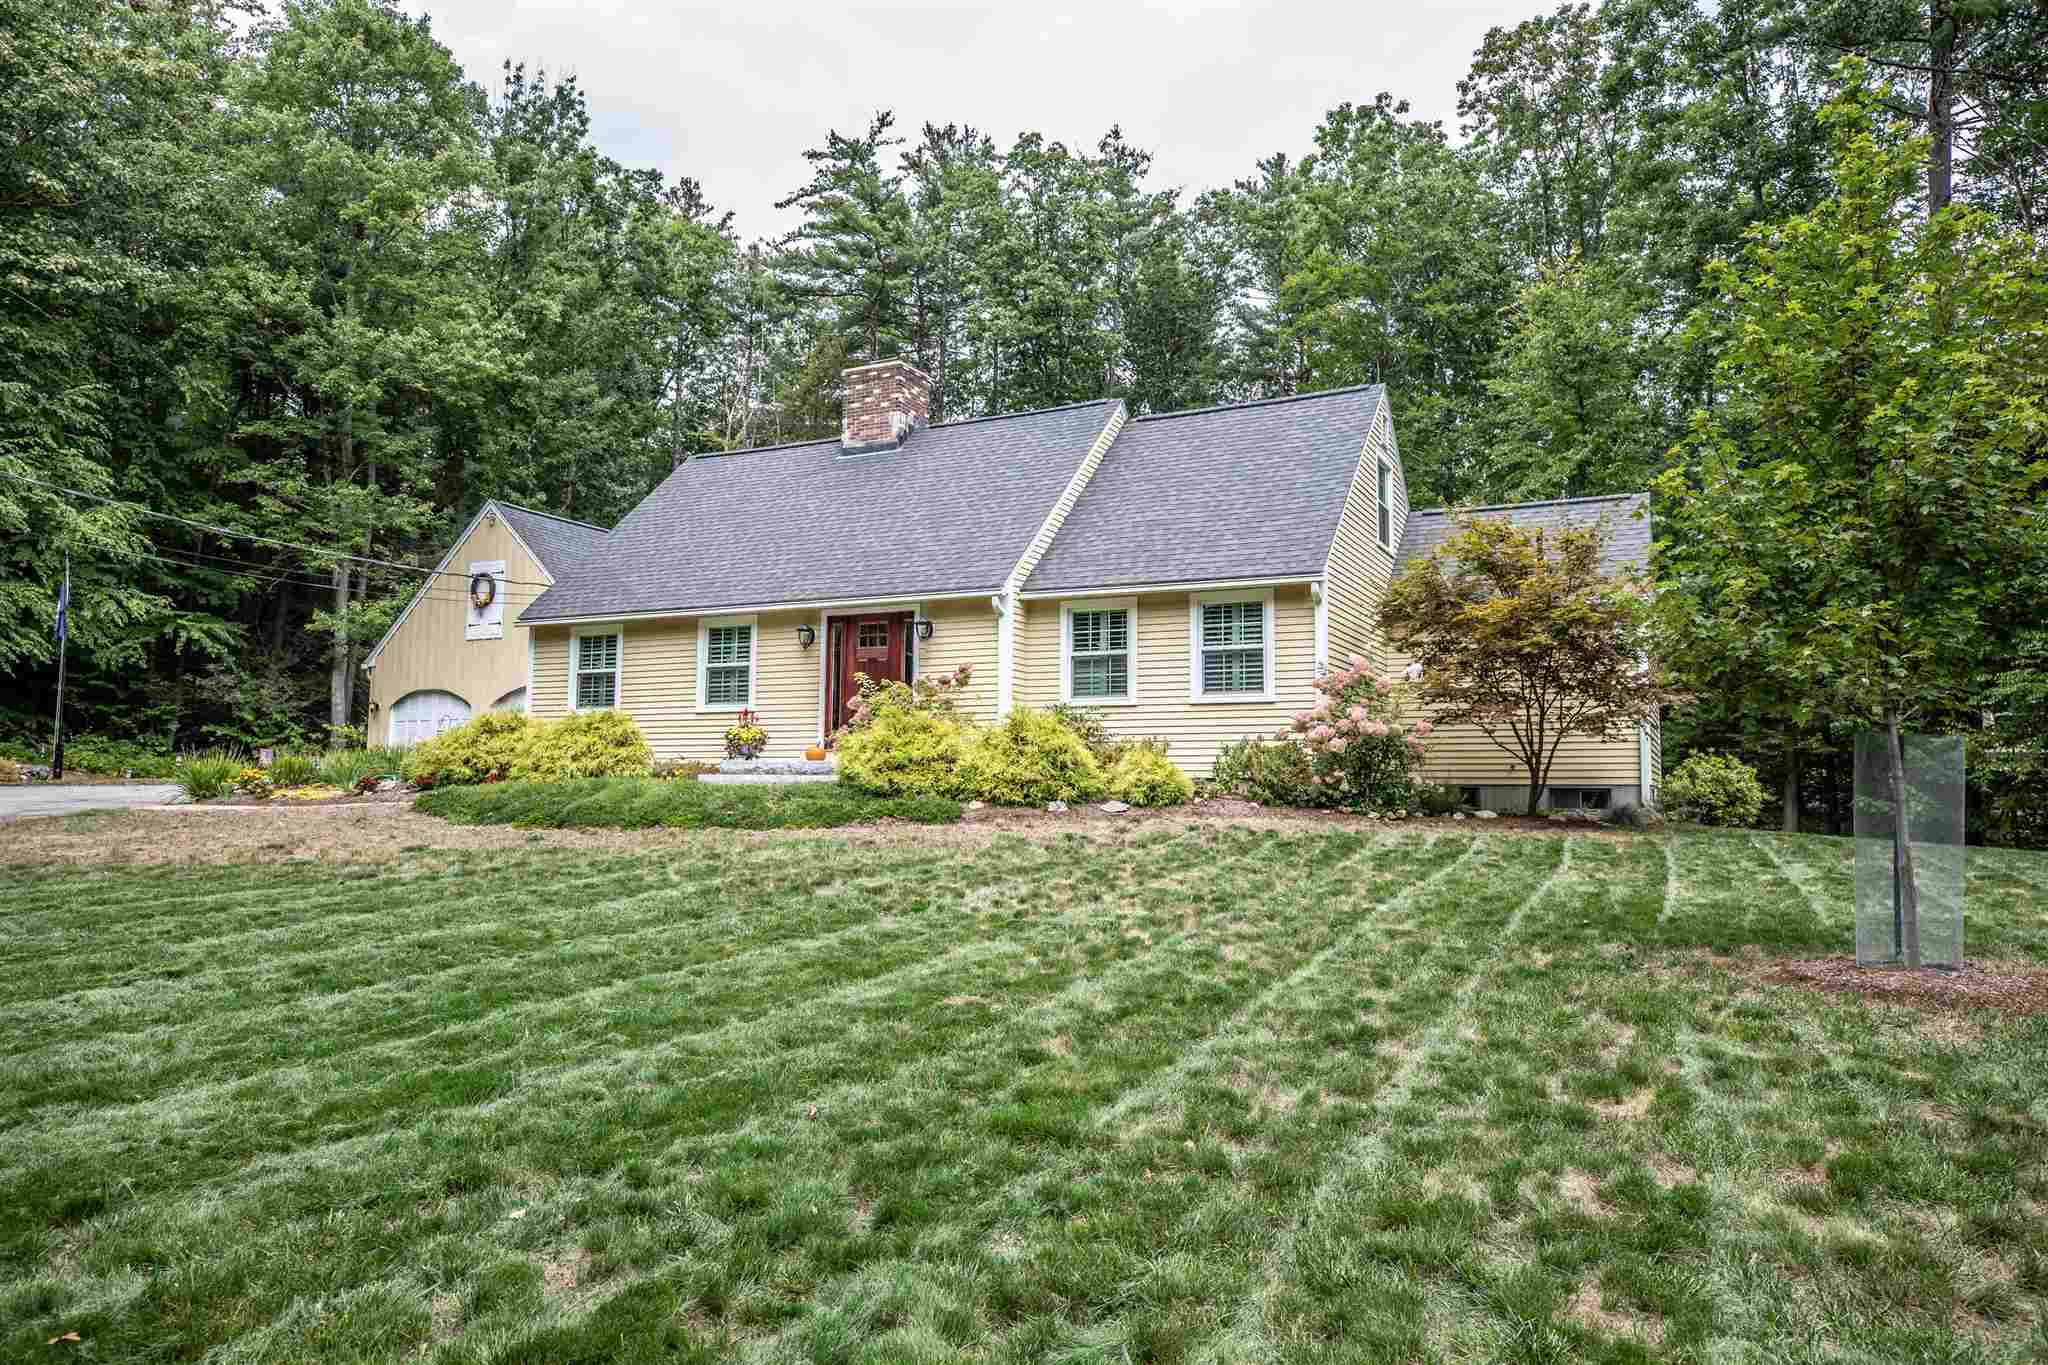 Photo of 20 woodland Drive Amherst NH 03031